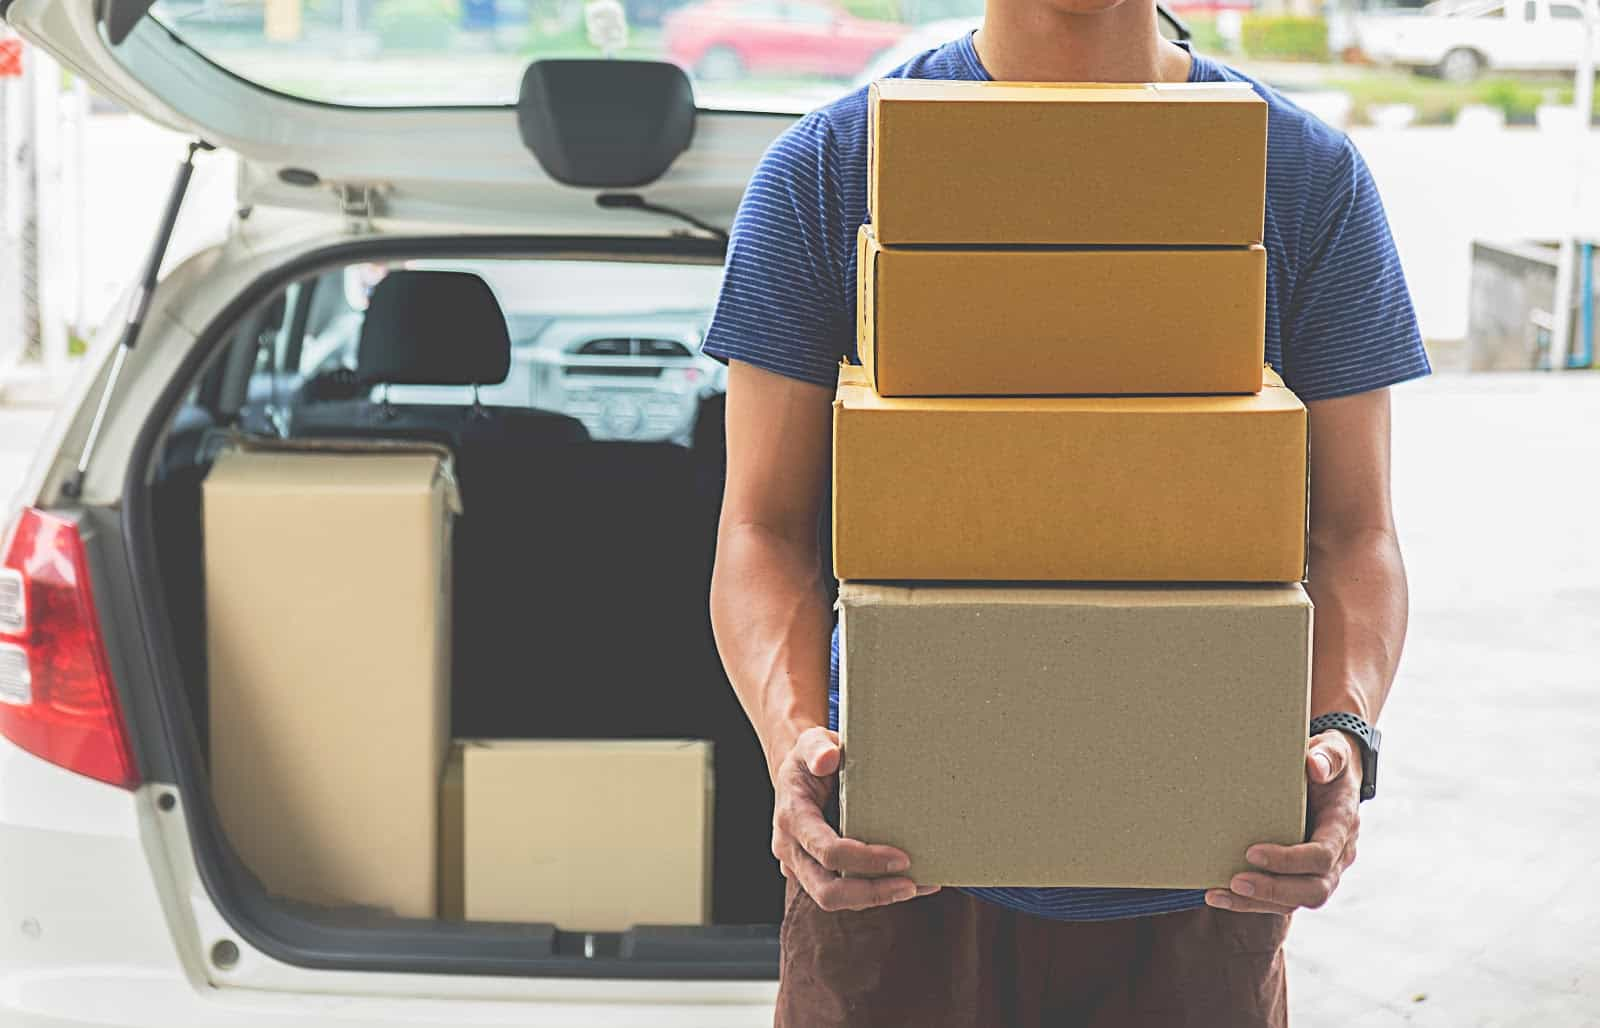 Apply for Amazon Flex: A delivery driver carrying boxes